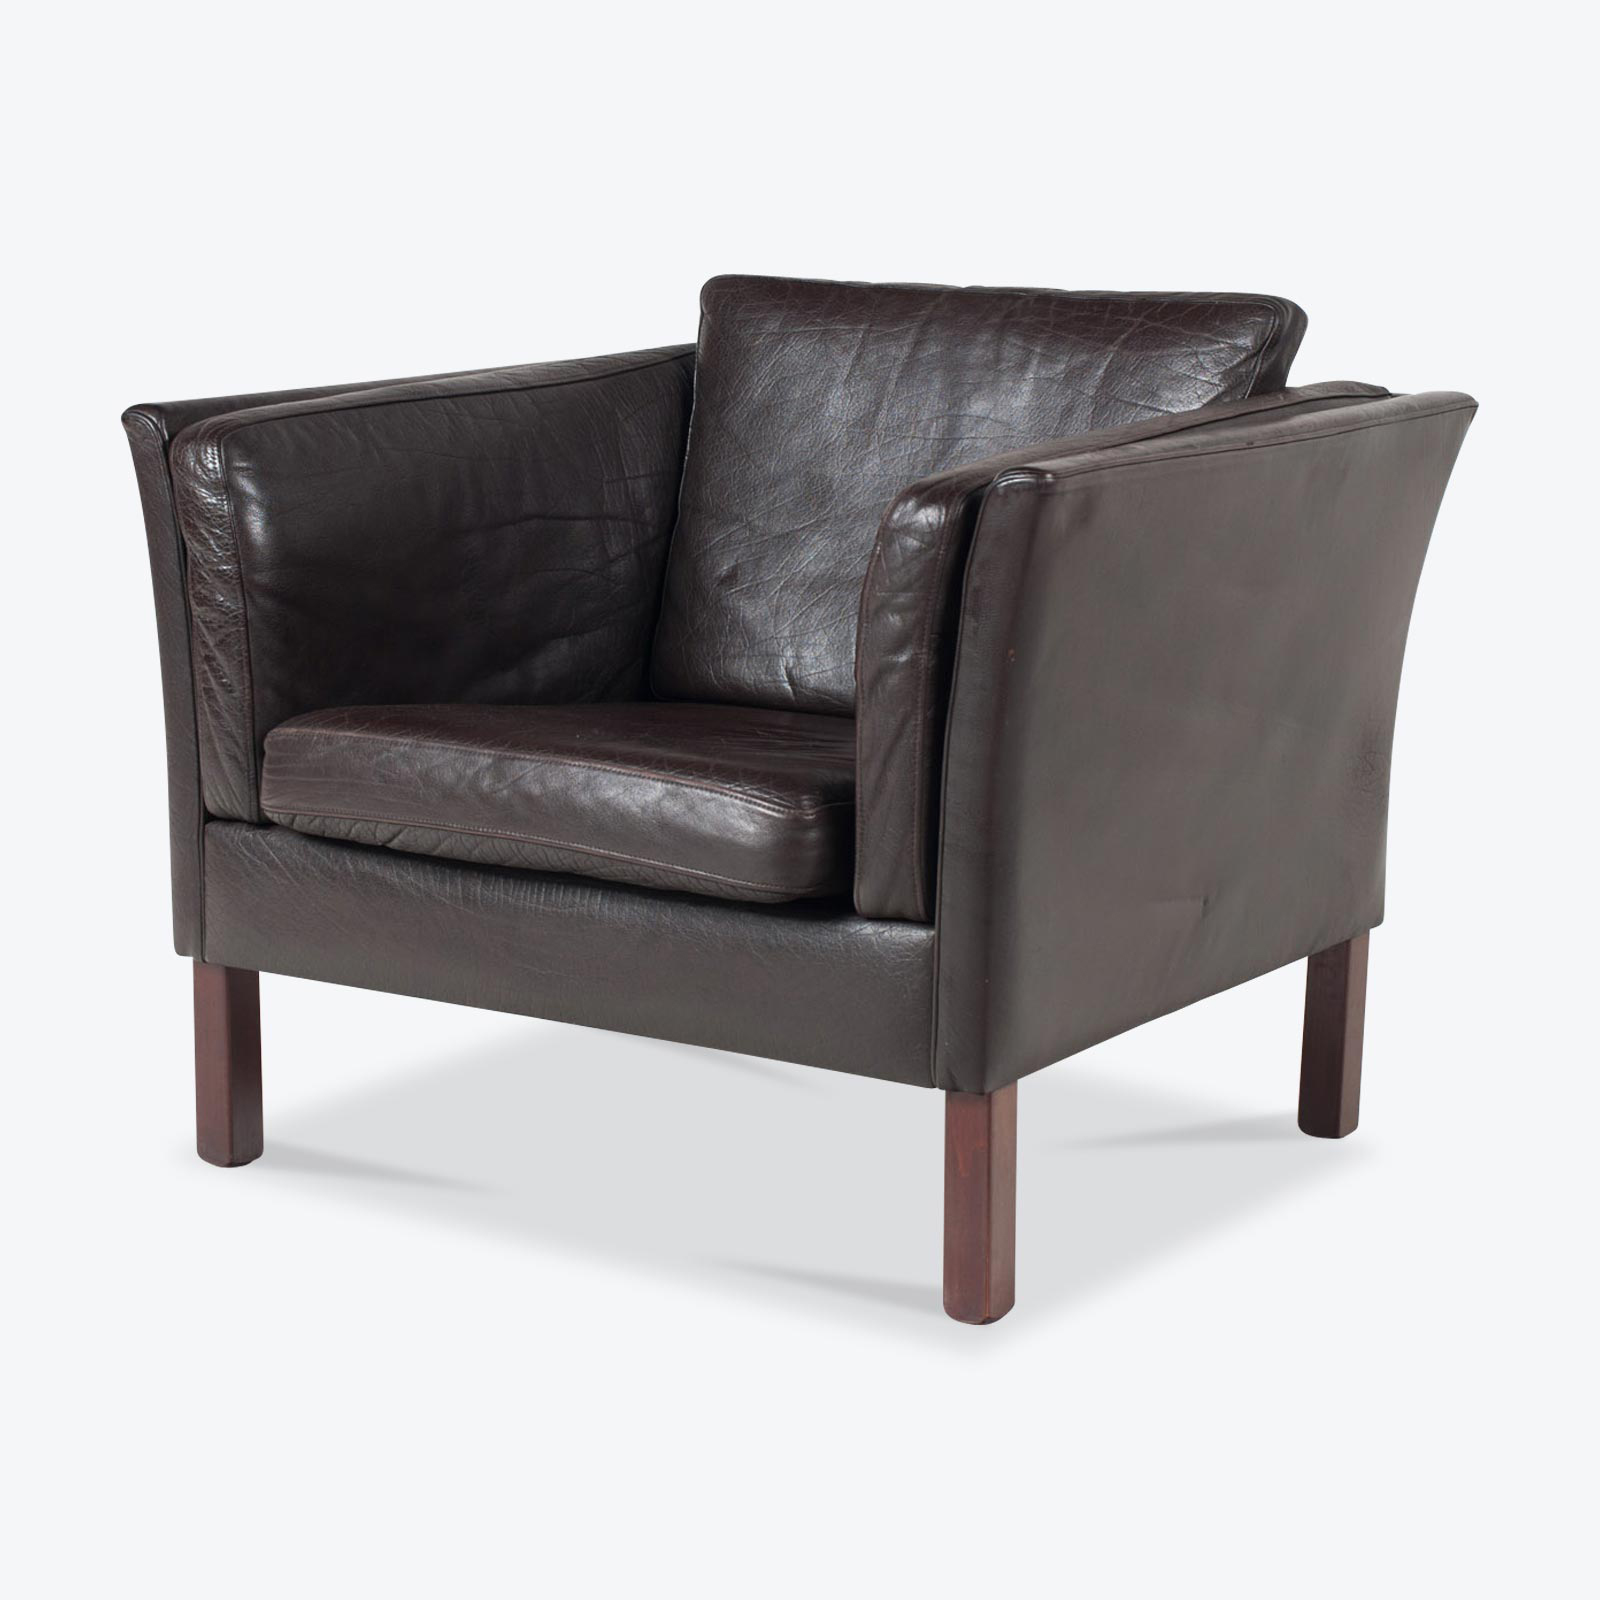 Armchair In Dark Leather With Stained Beech Base 1960s Denmark 02.jpg